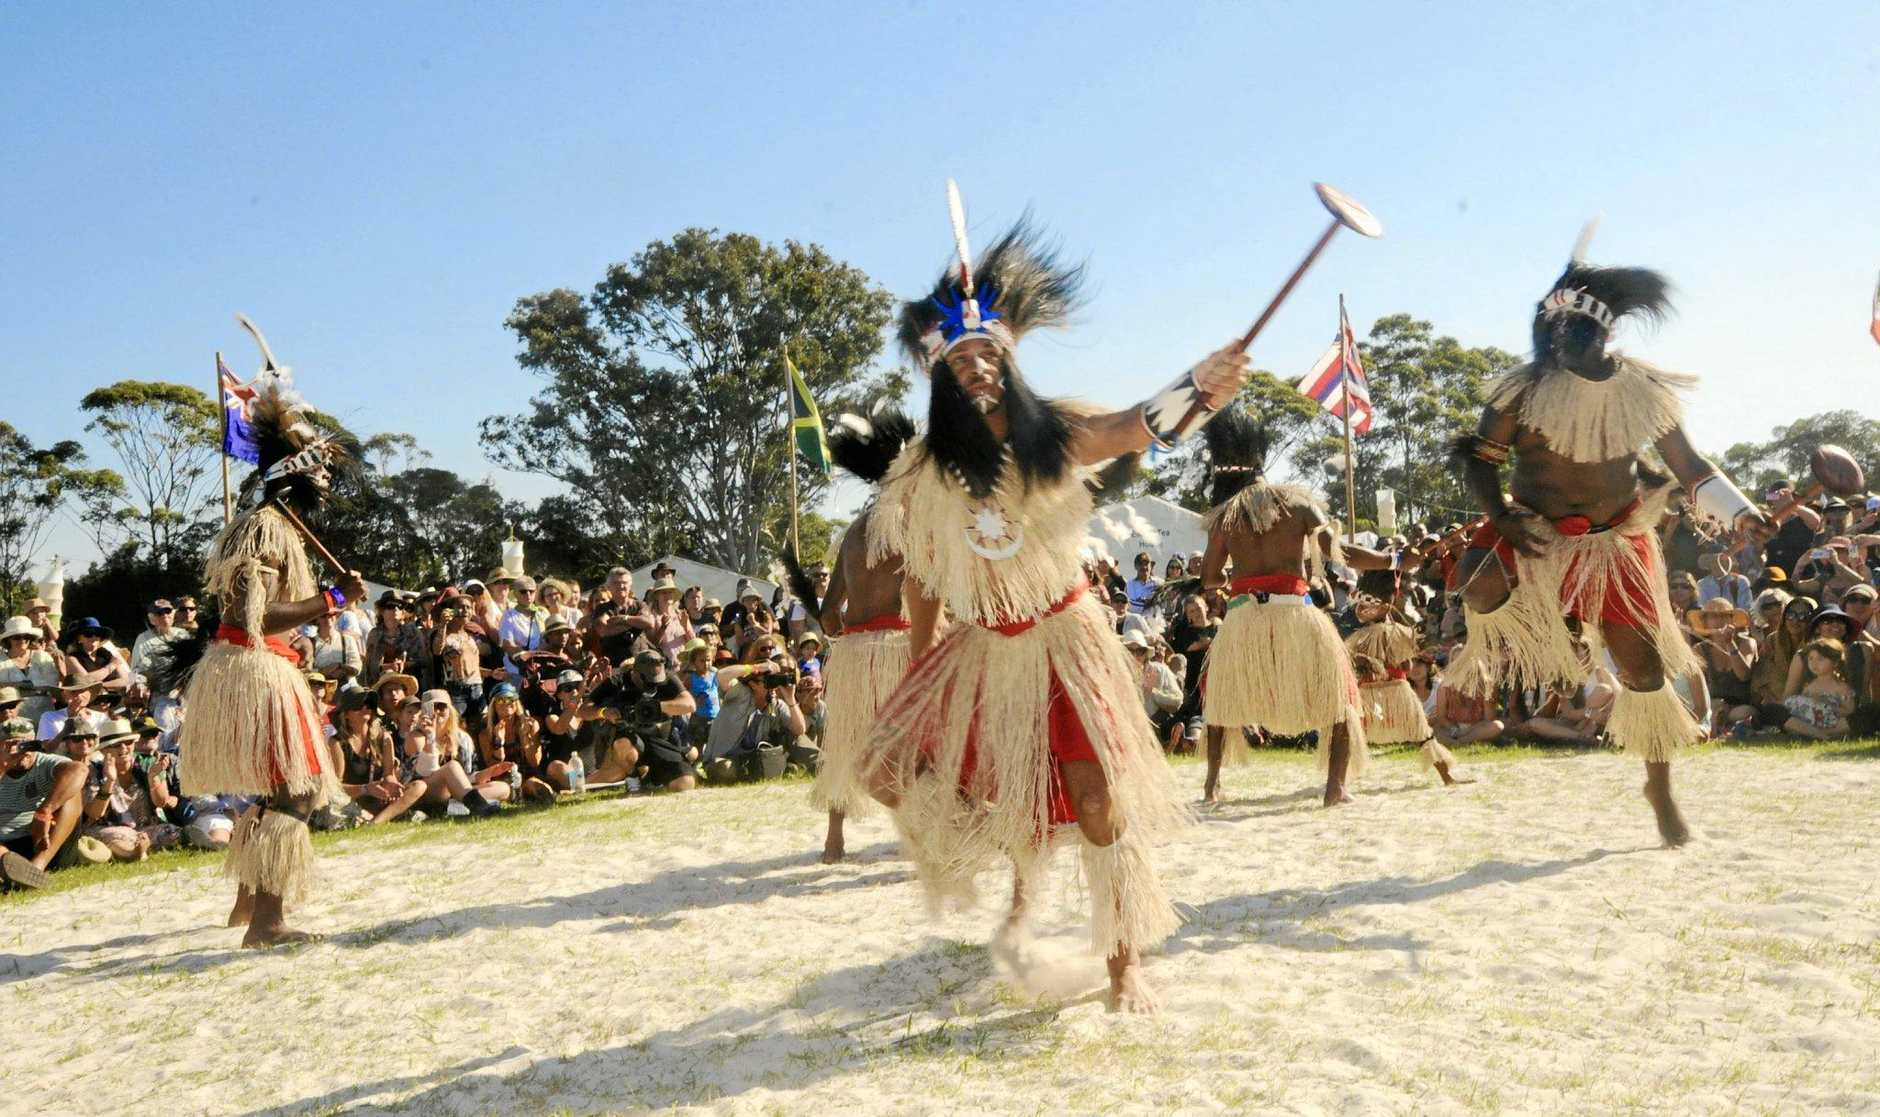 CULTURE: Malu Kiai Mura Buai Dance Troupe performs at the Boomerang Festival in 2013.